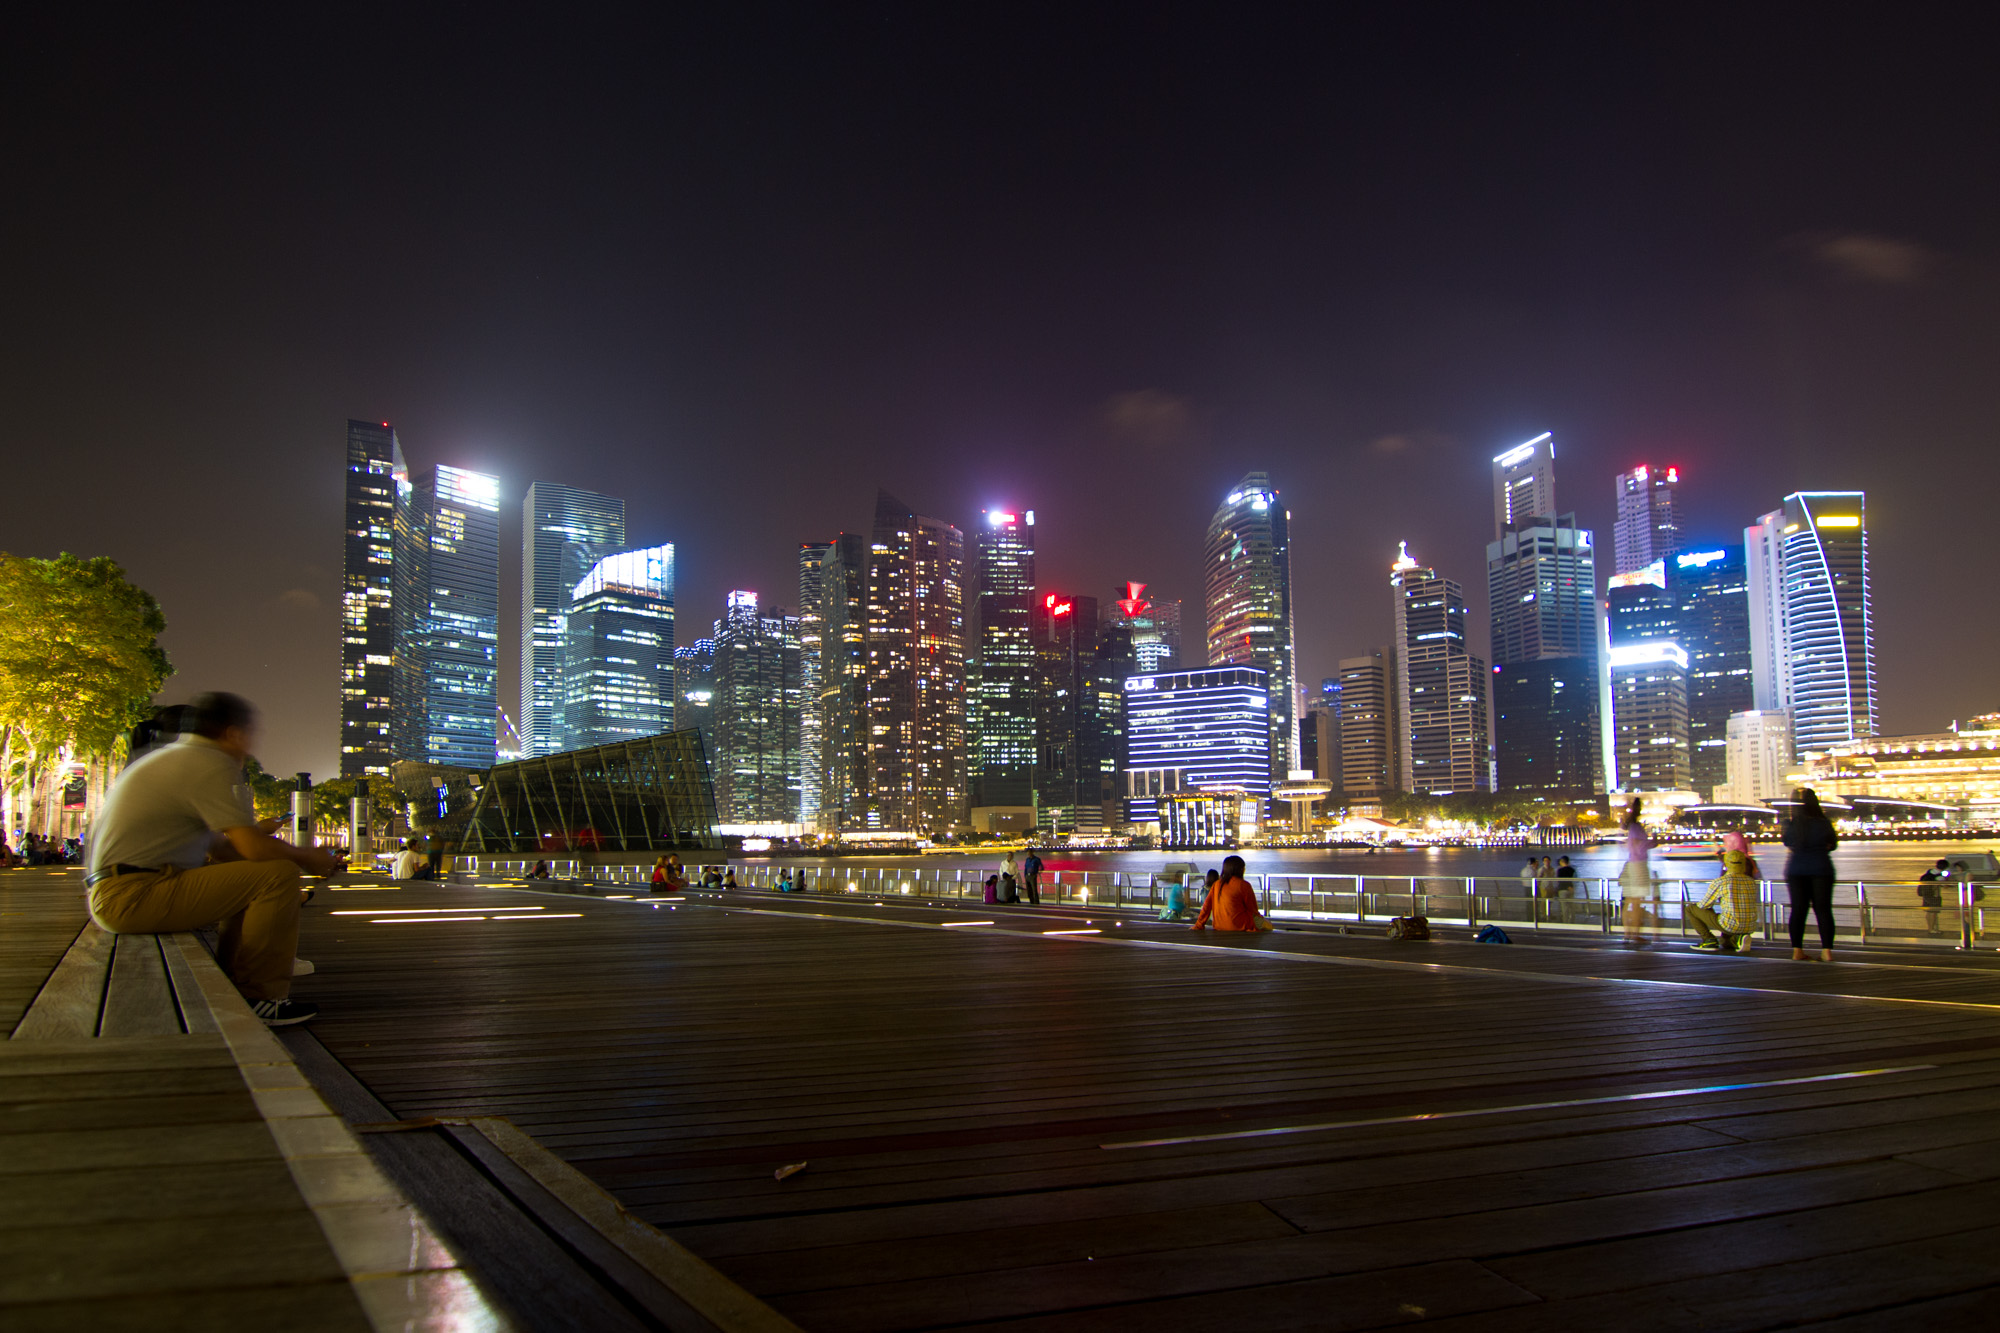 View on the Singpore skyline from Marina Bay Sands.